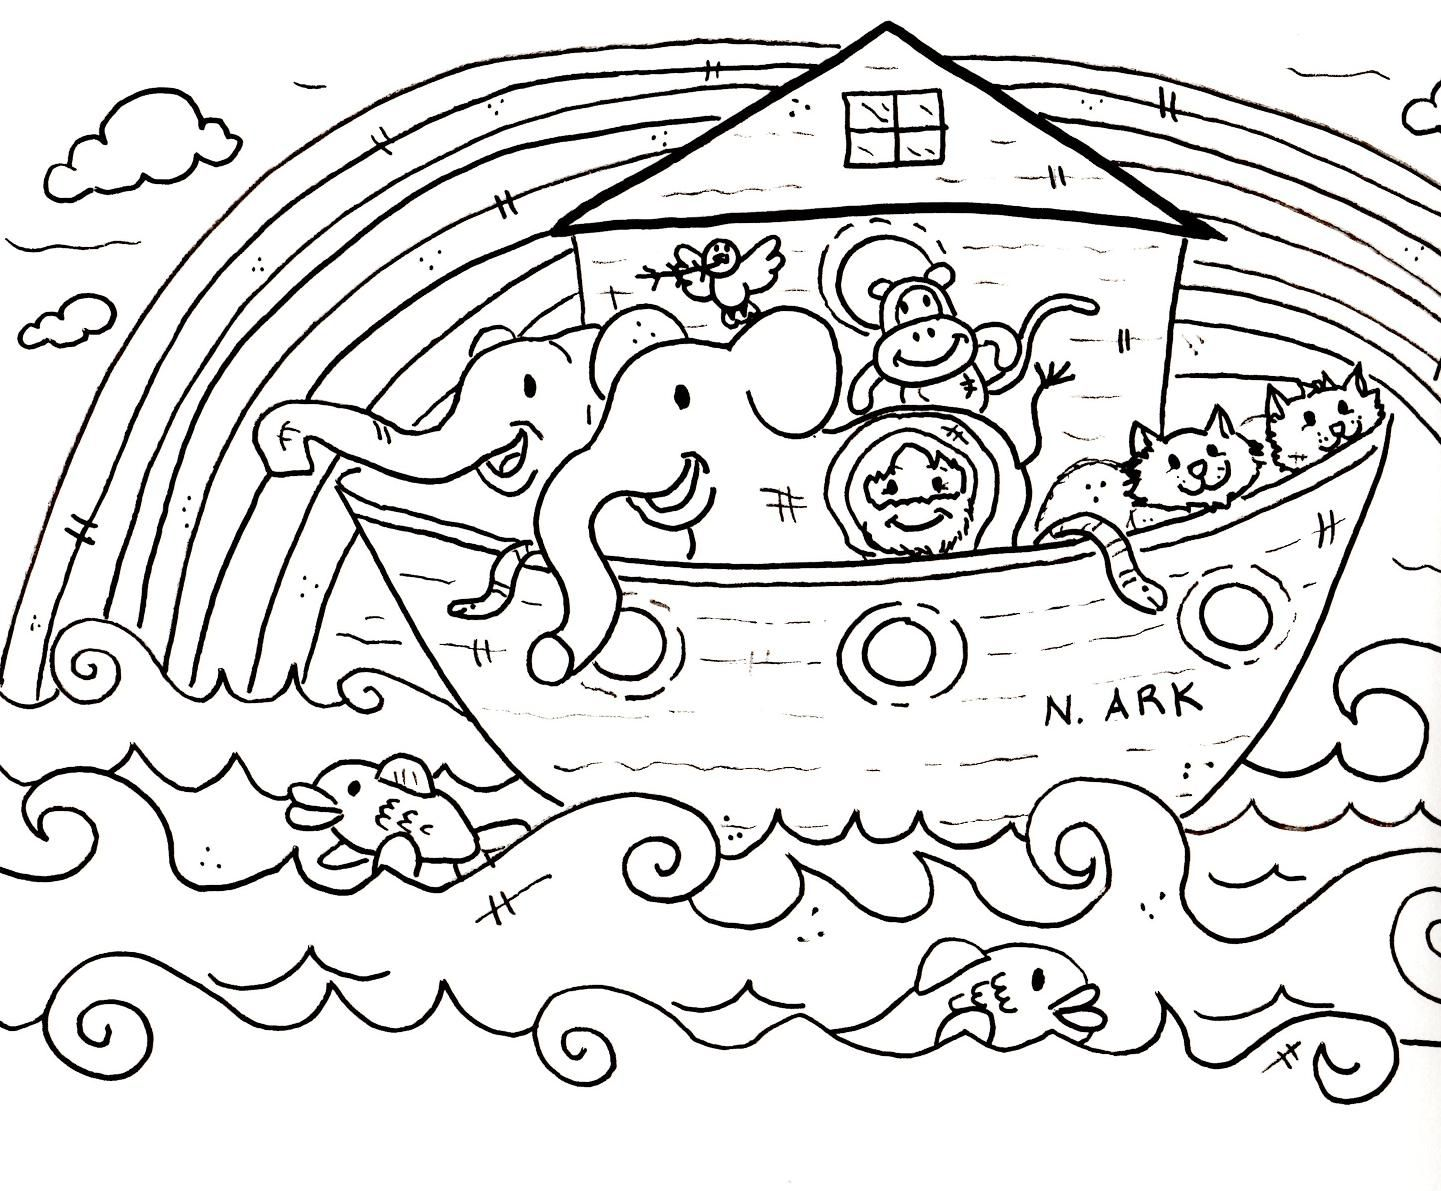 Children coloring pages for church sunday school coloring pages coloring pages pictures imagixs